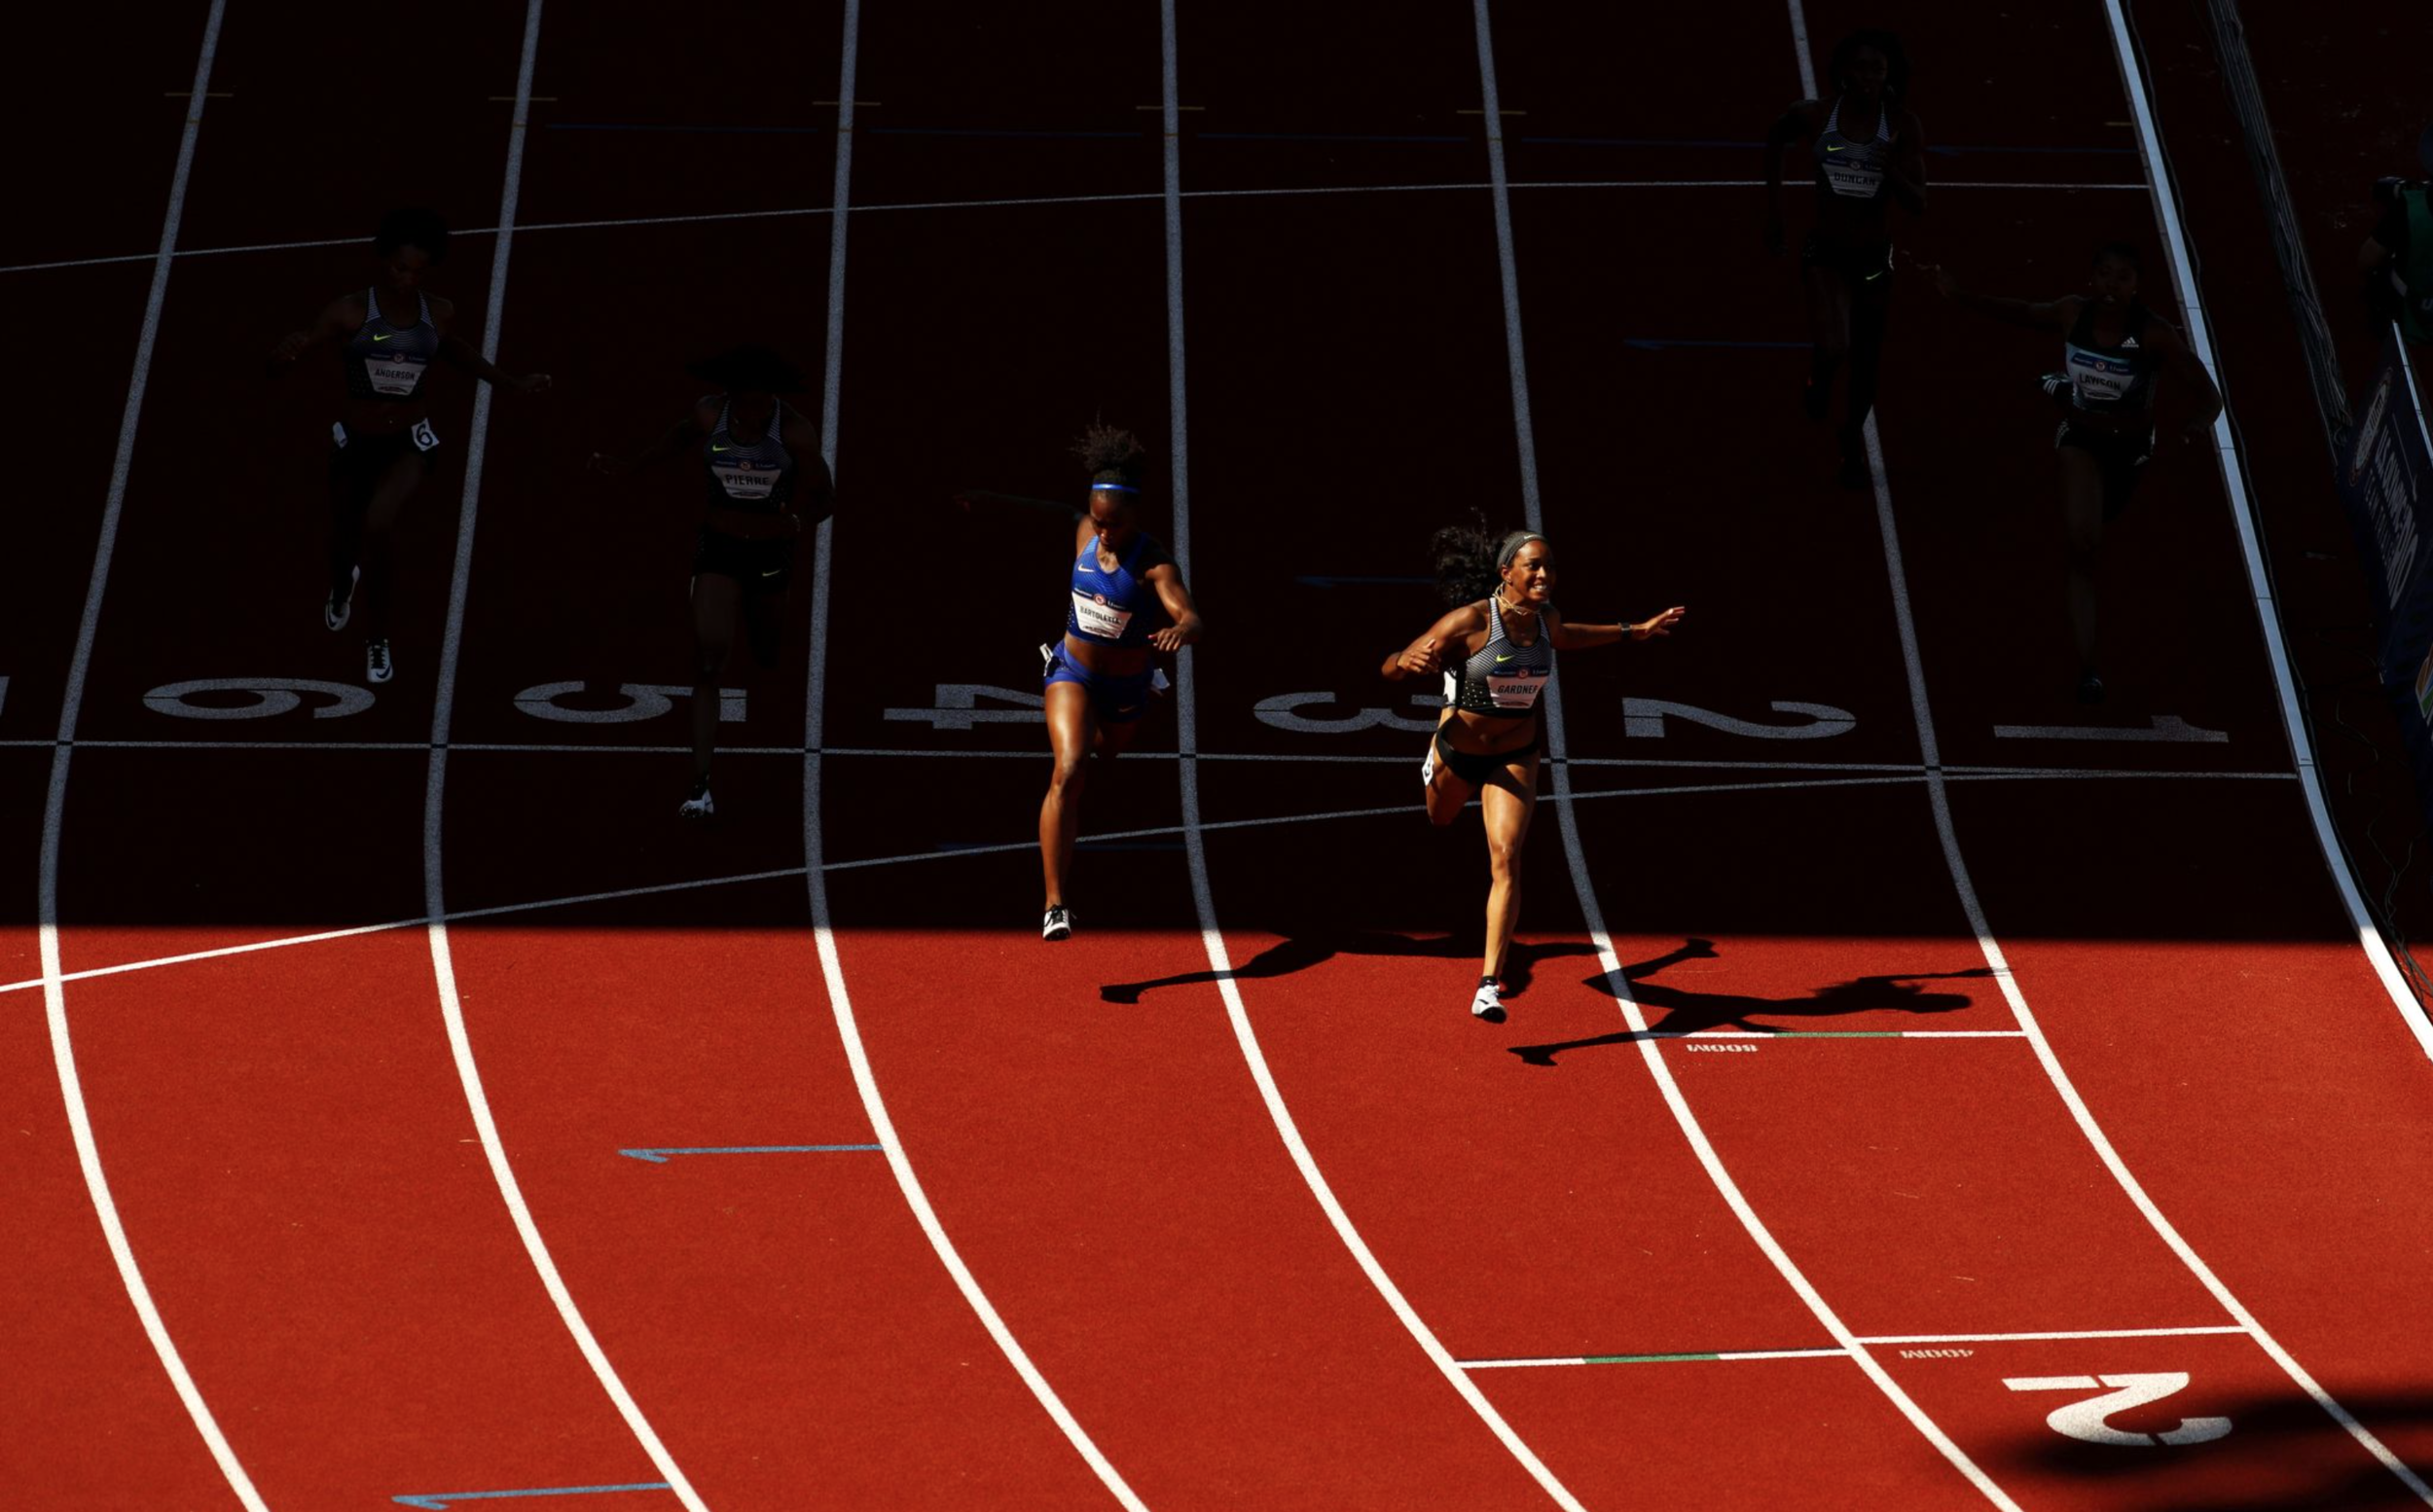 After failing to make the Olympic team in 2012, English Gardner won the women's 100-meter to book her spot in Rio.